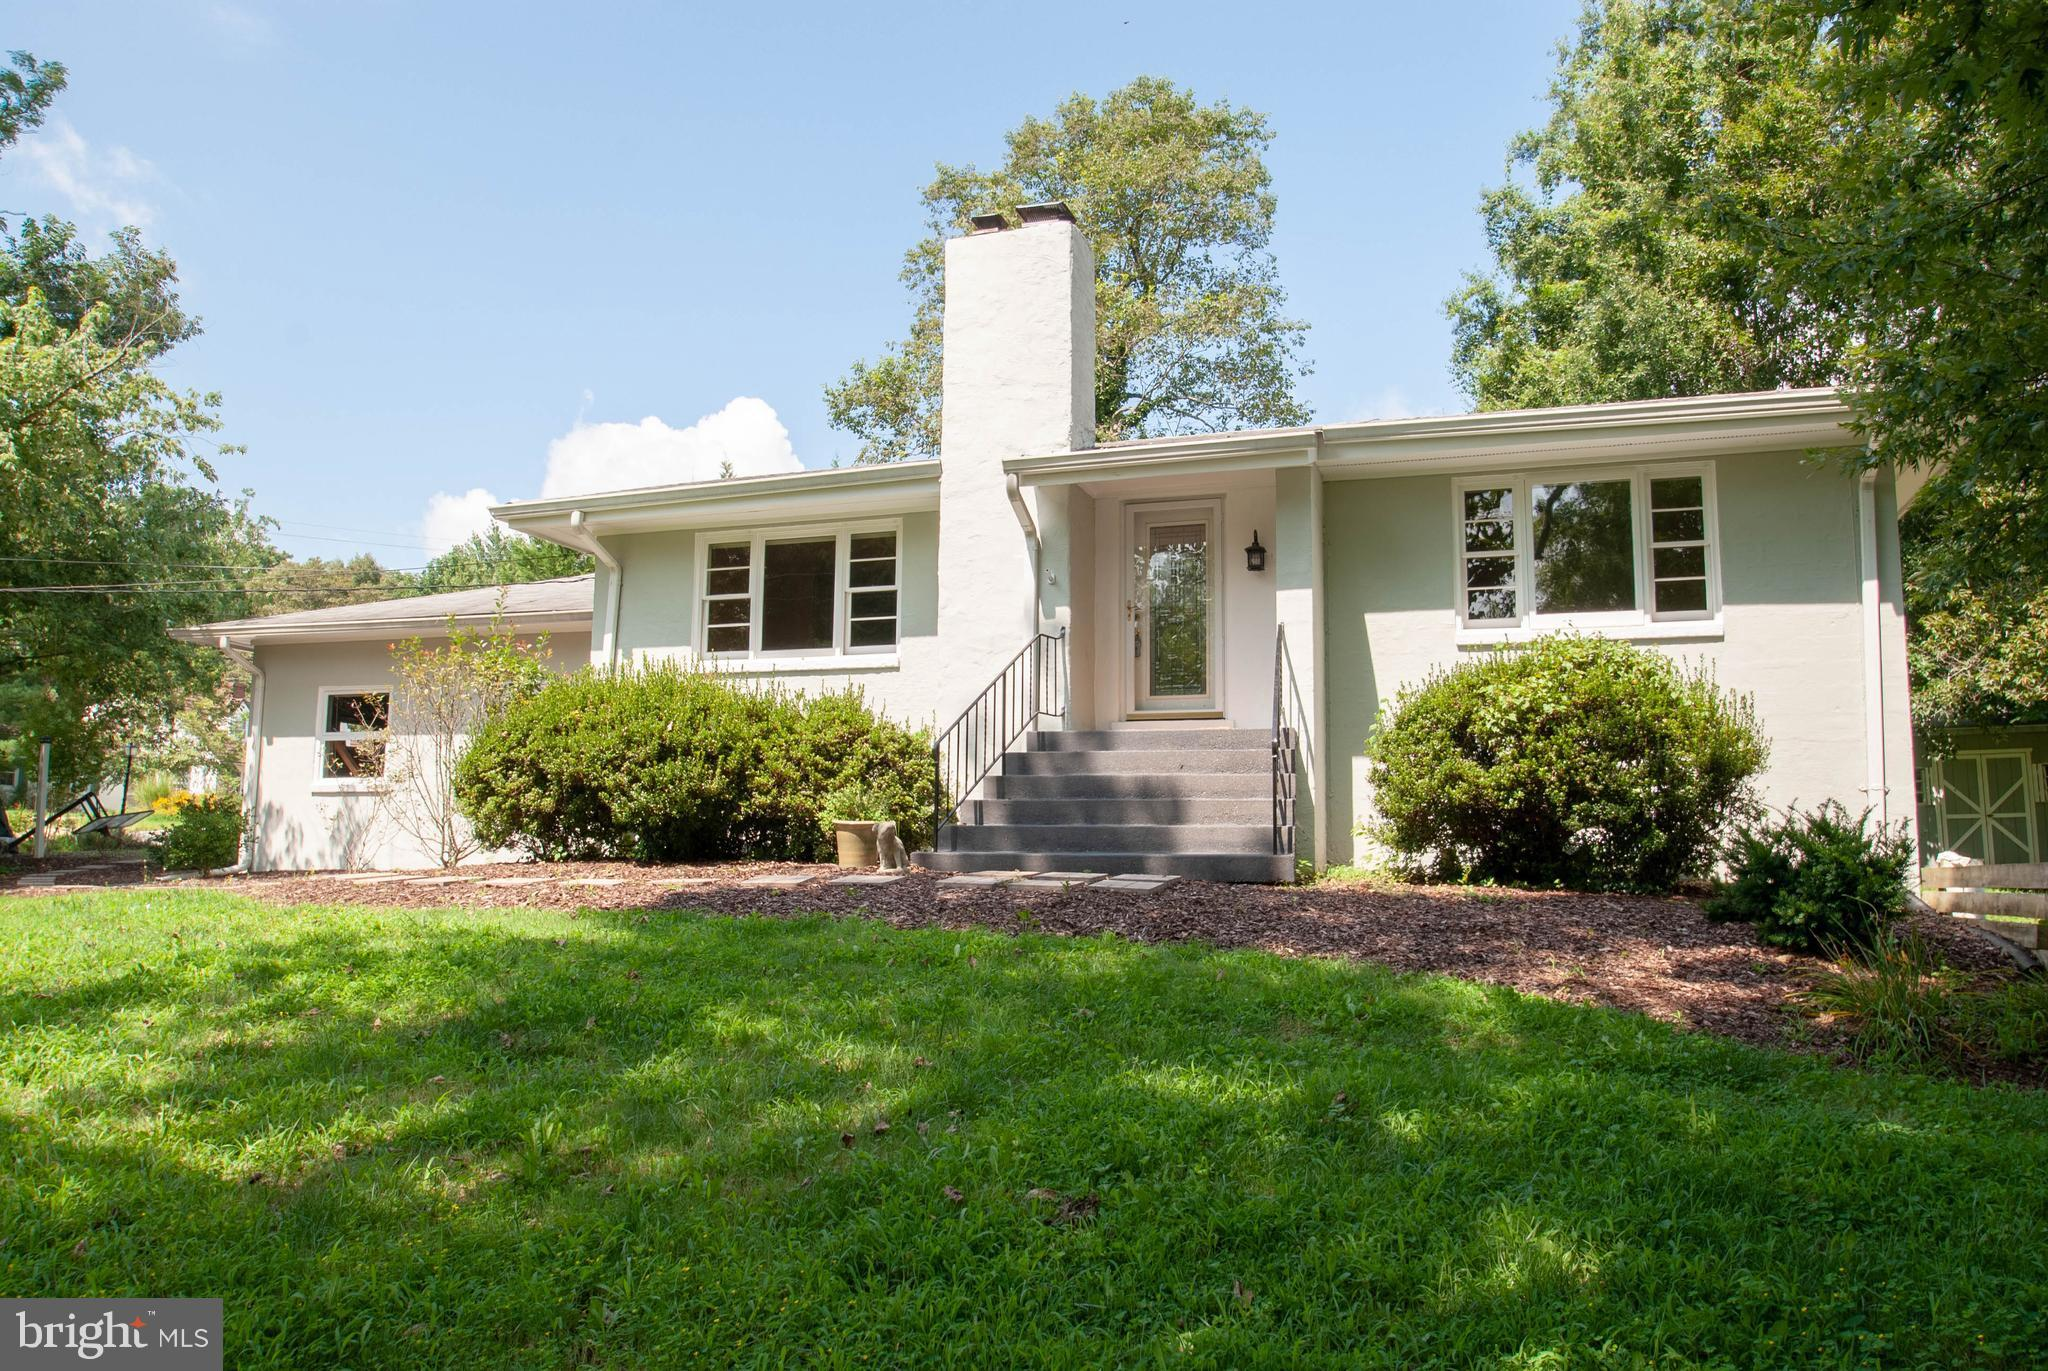 430 FERRY POINT ROAD, ANNAPOLIS, MD 21403